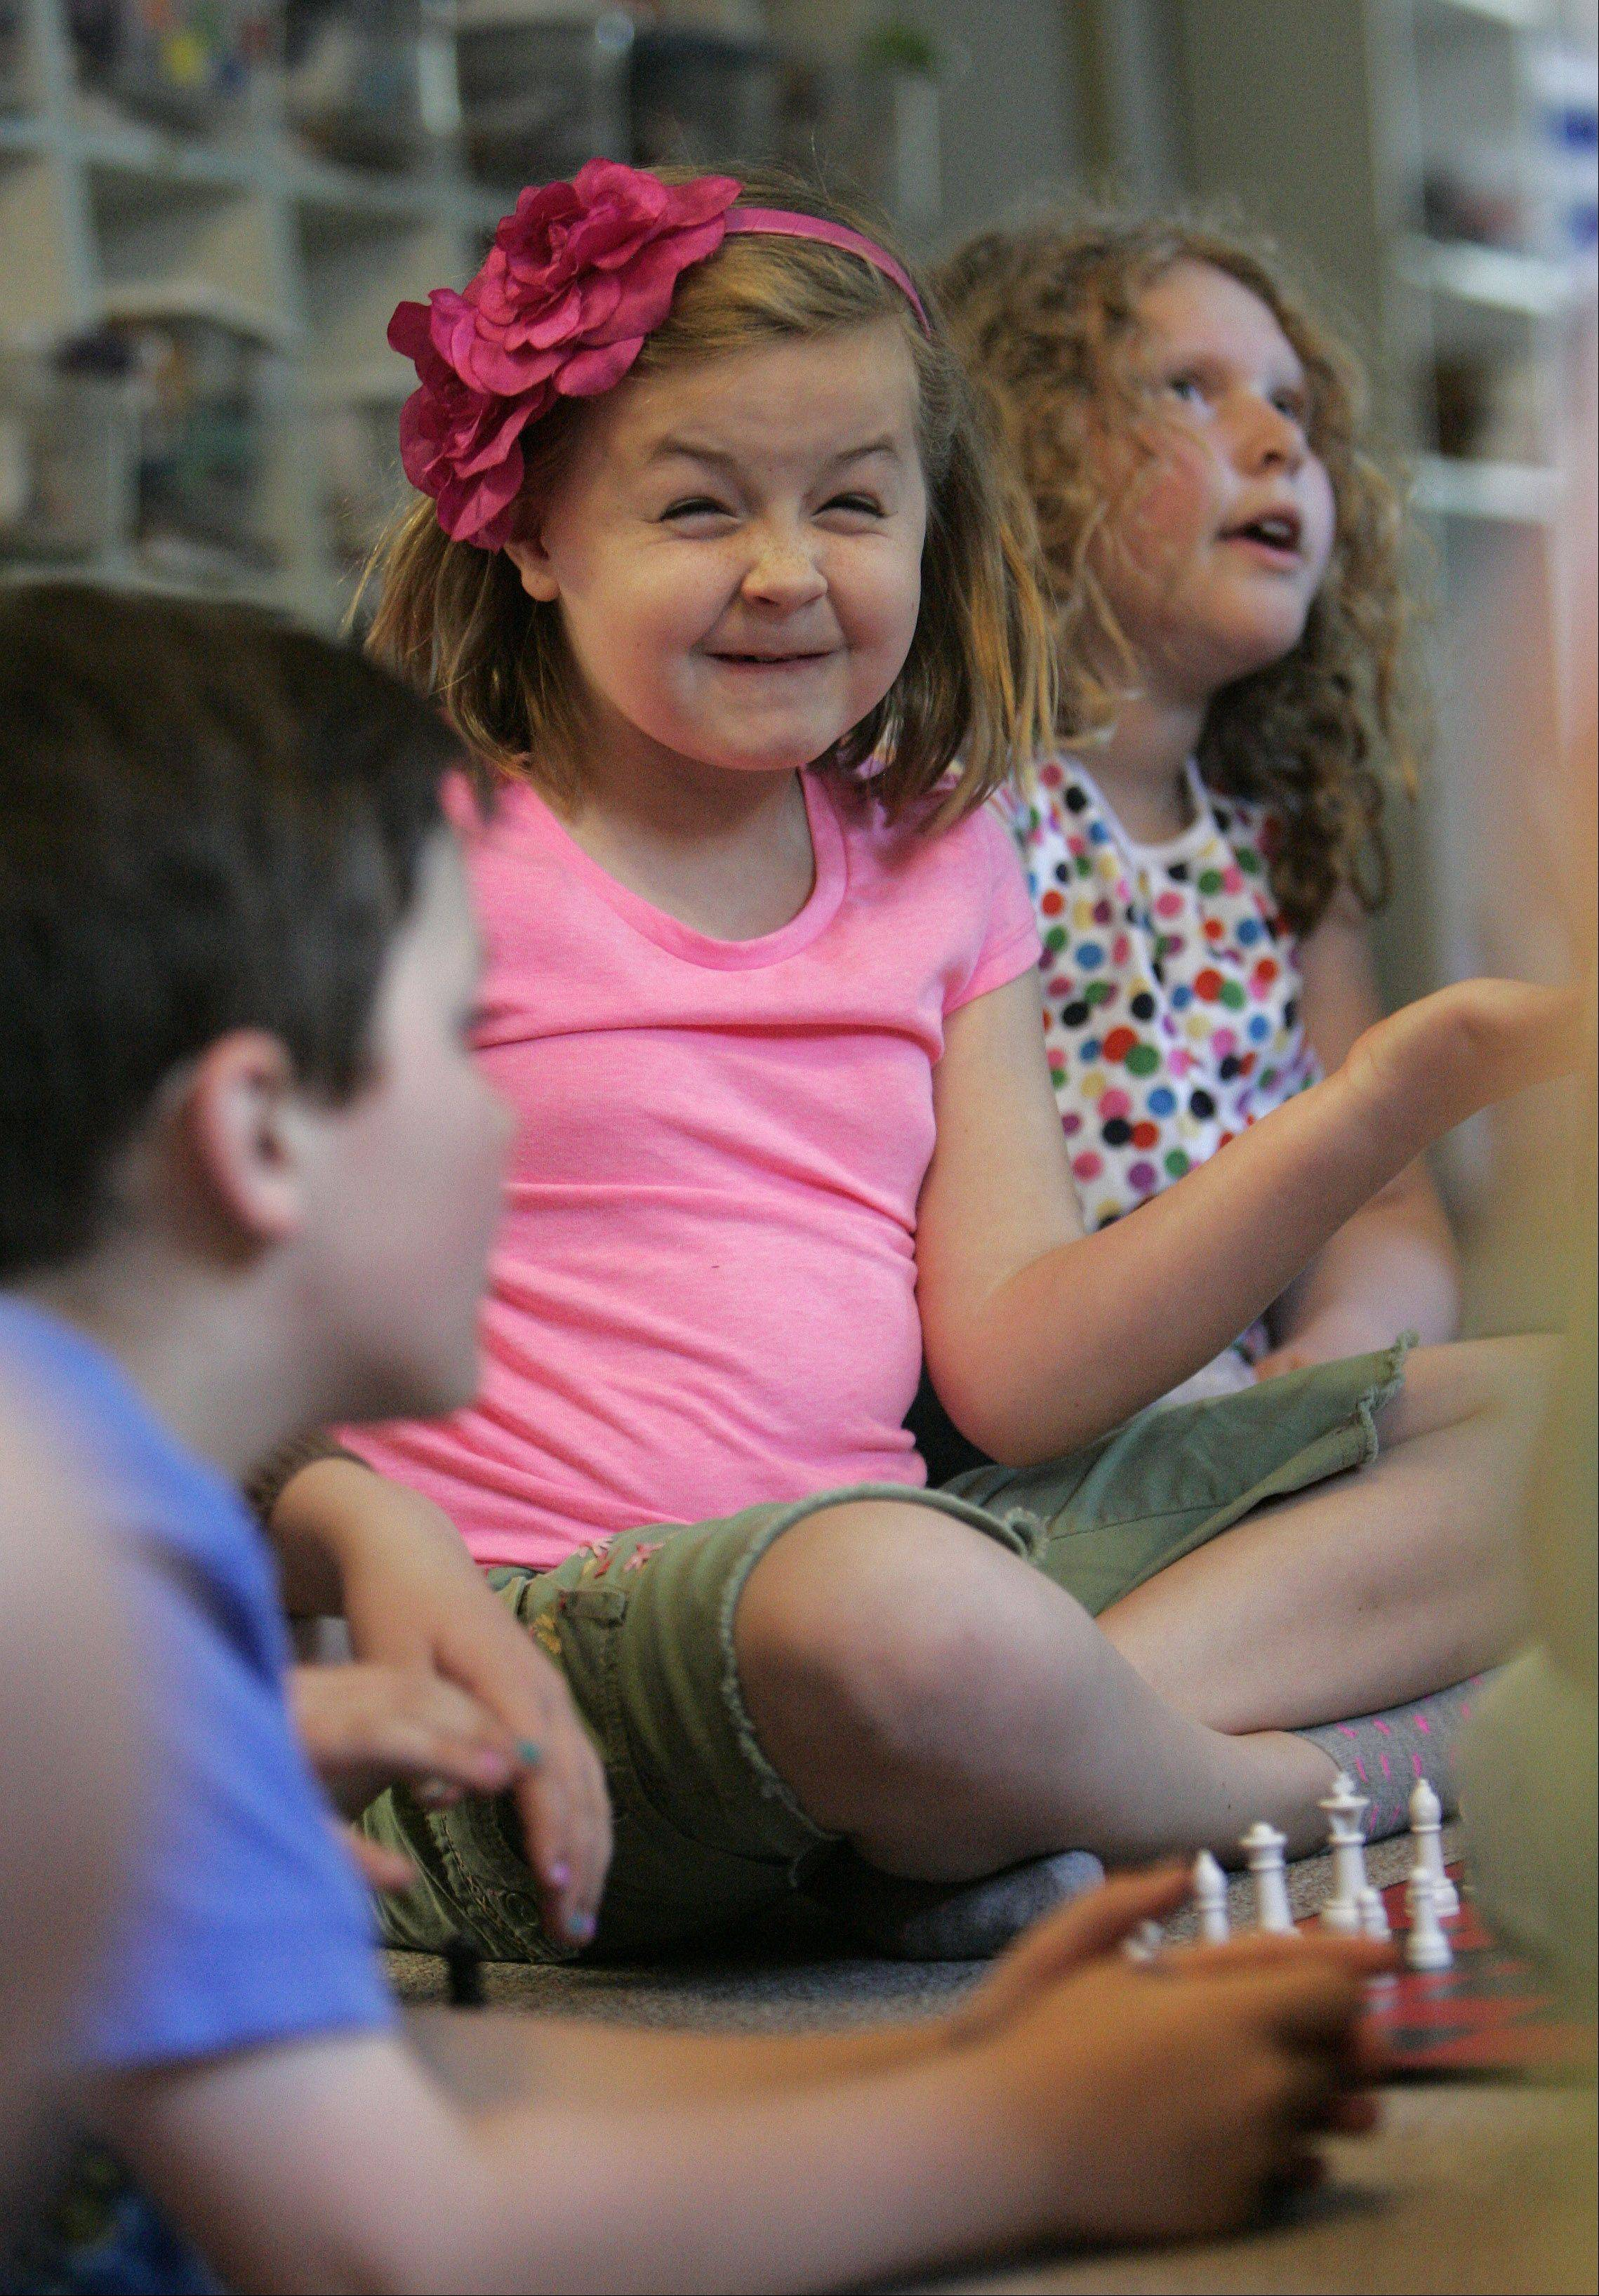 Seven-year-old Chloe Rockenhauser of Elgin, reacts during a game of chess at Children's House Montessori School in West Dundee Tuesday May 22, 2012. The school which has been open for 21 years averages about 40-50 students each year.